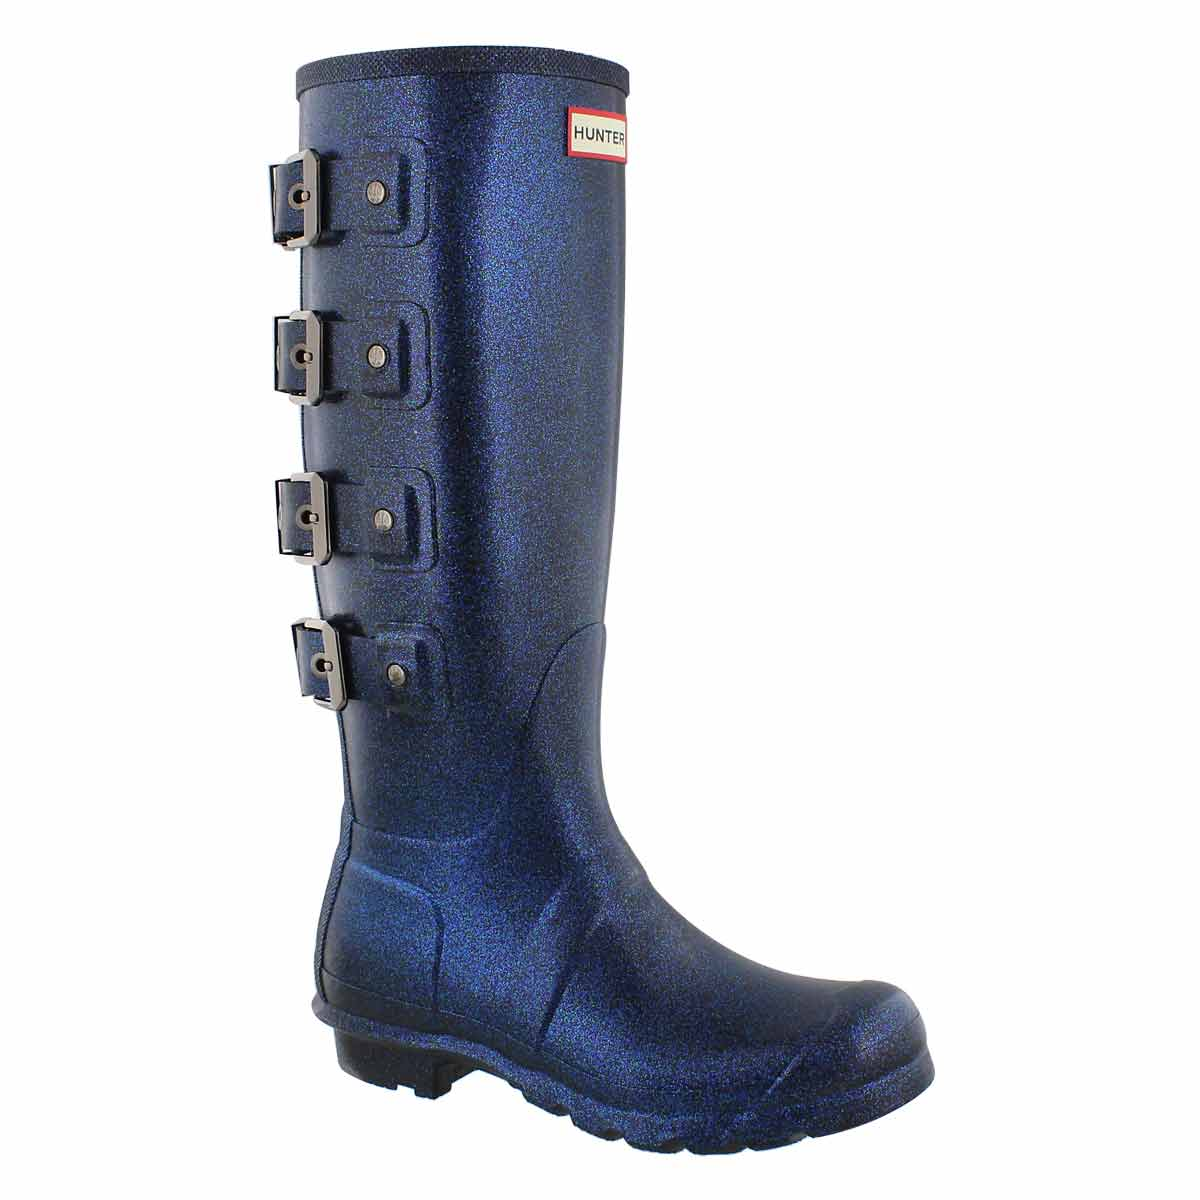 Women's ORIGINAL TALL MS neptune rain boots